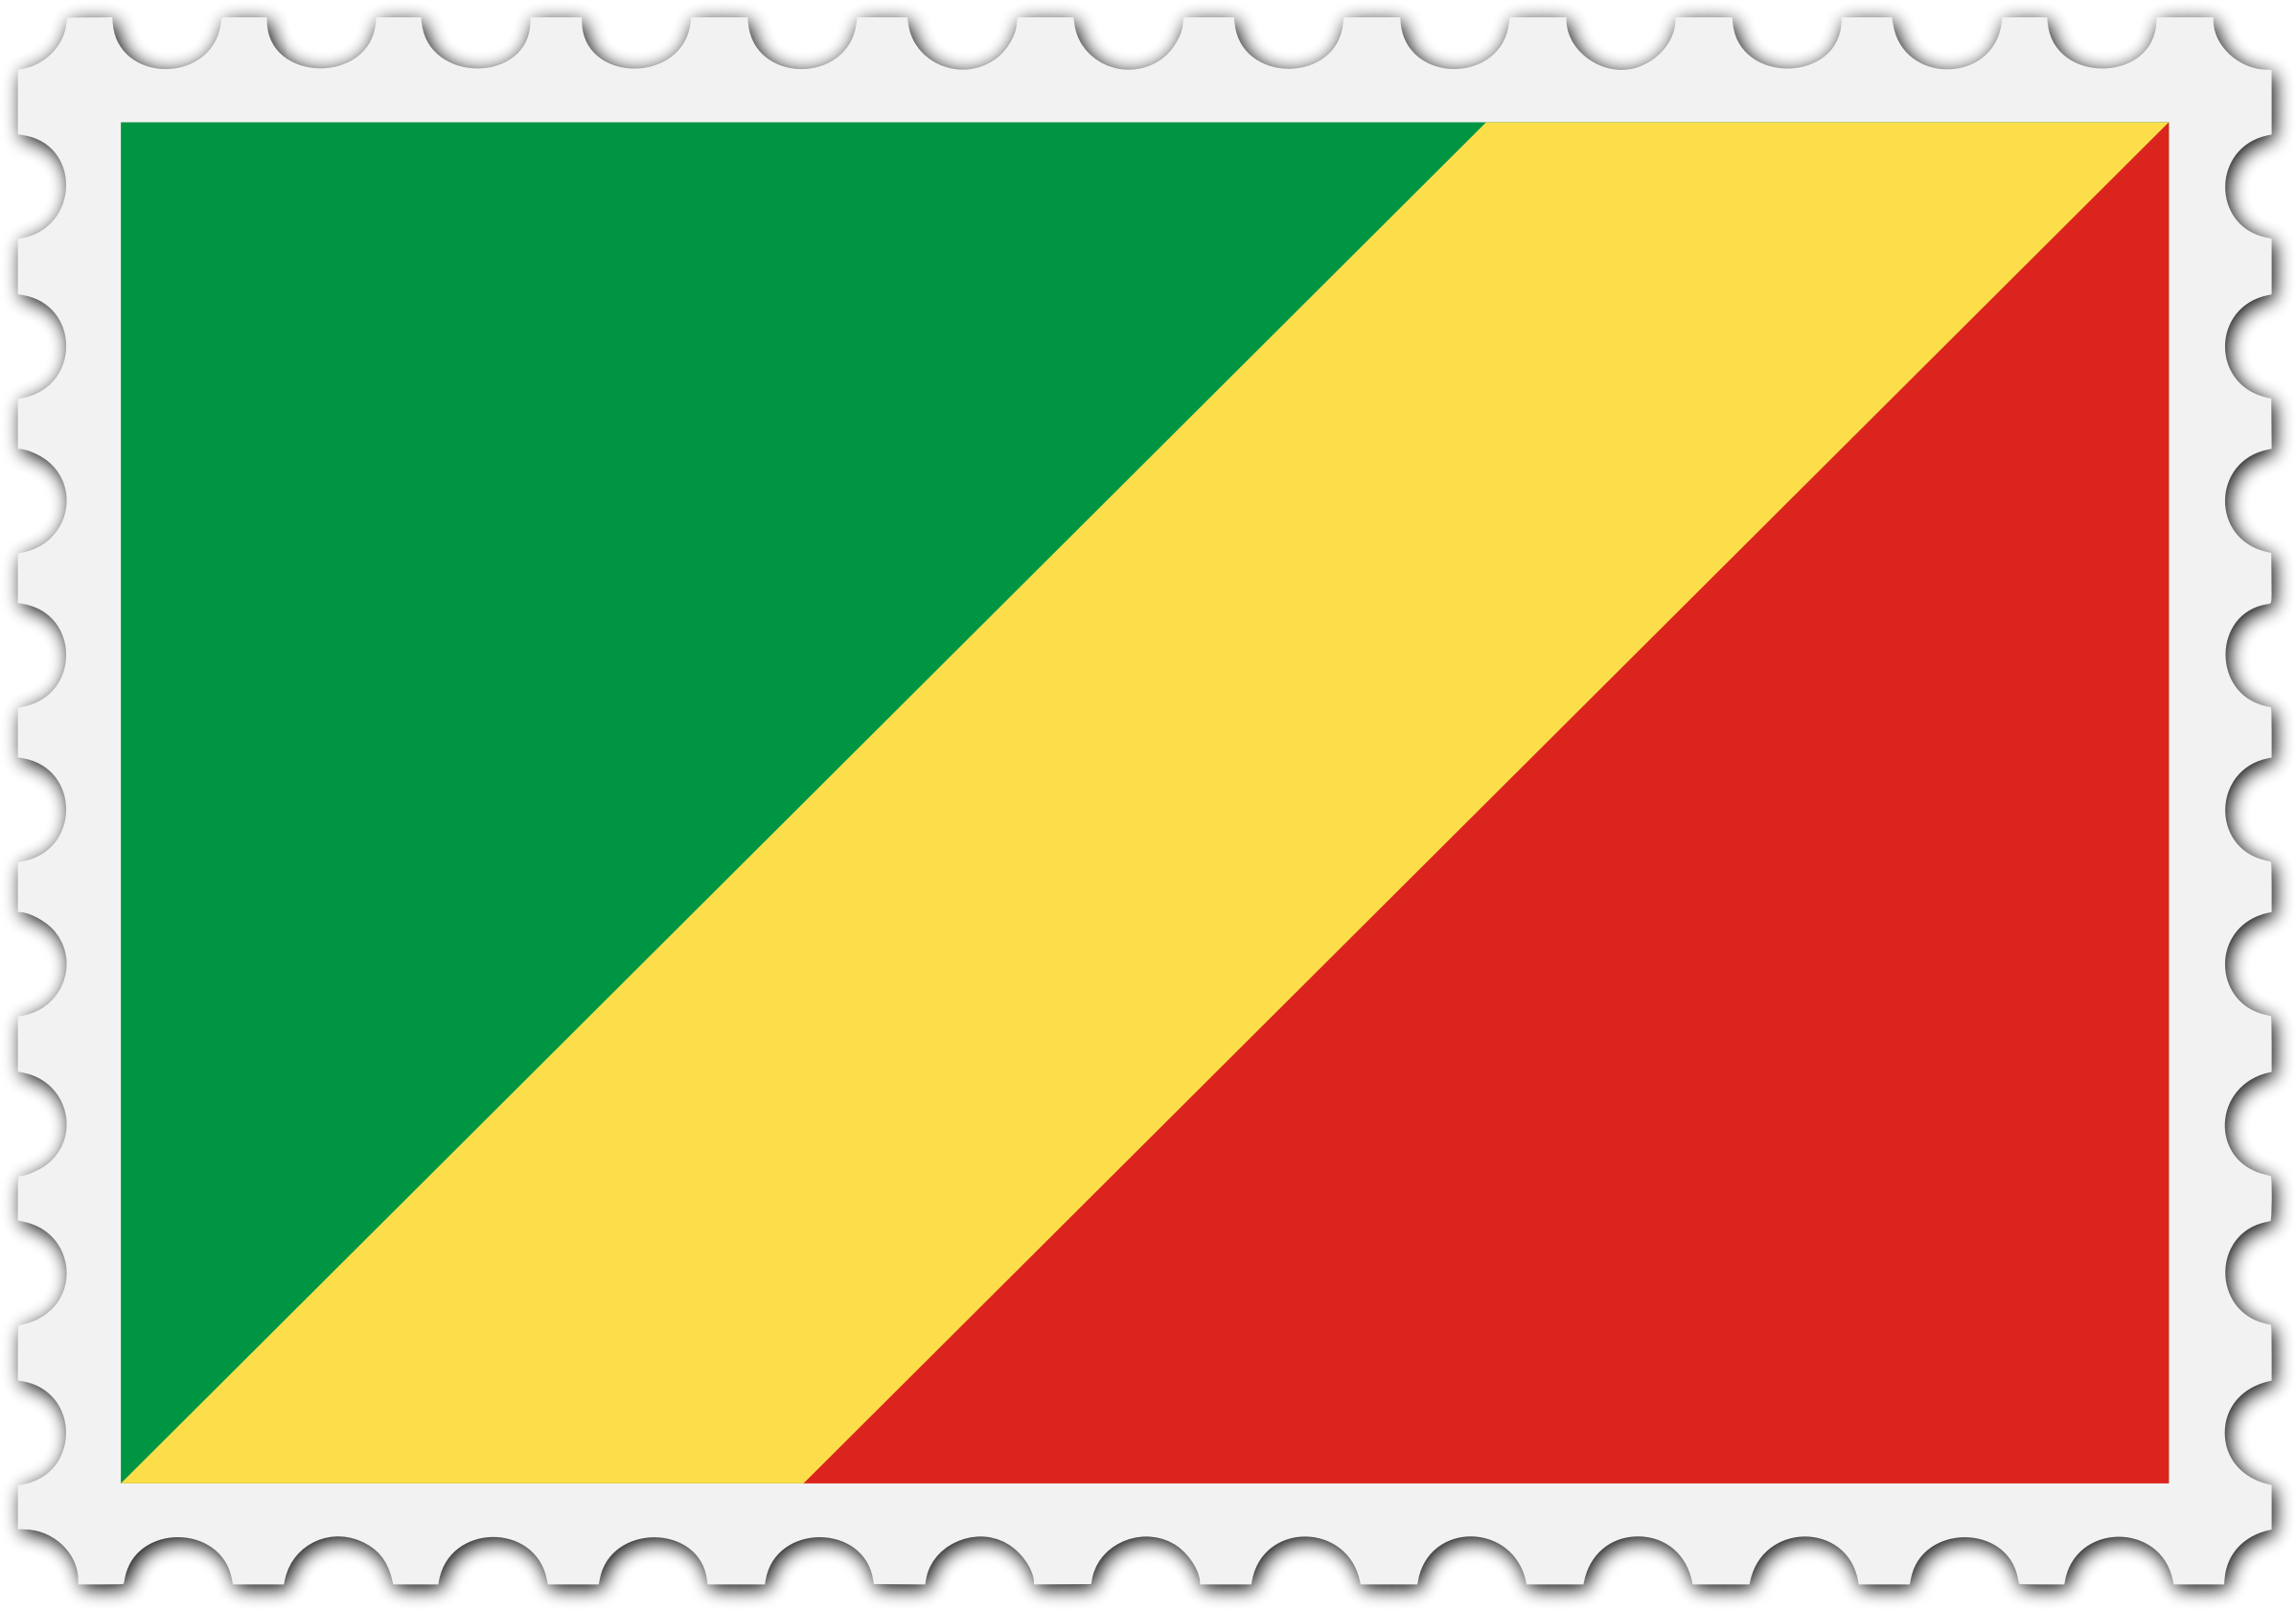 Republic of the Congo flag stamp by Firkin